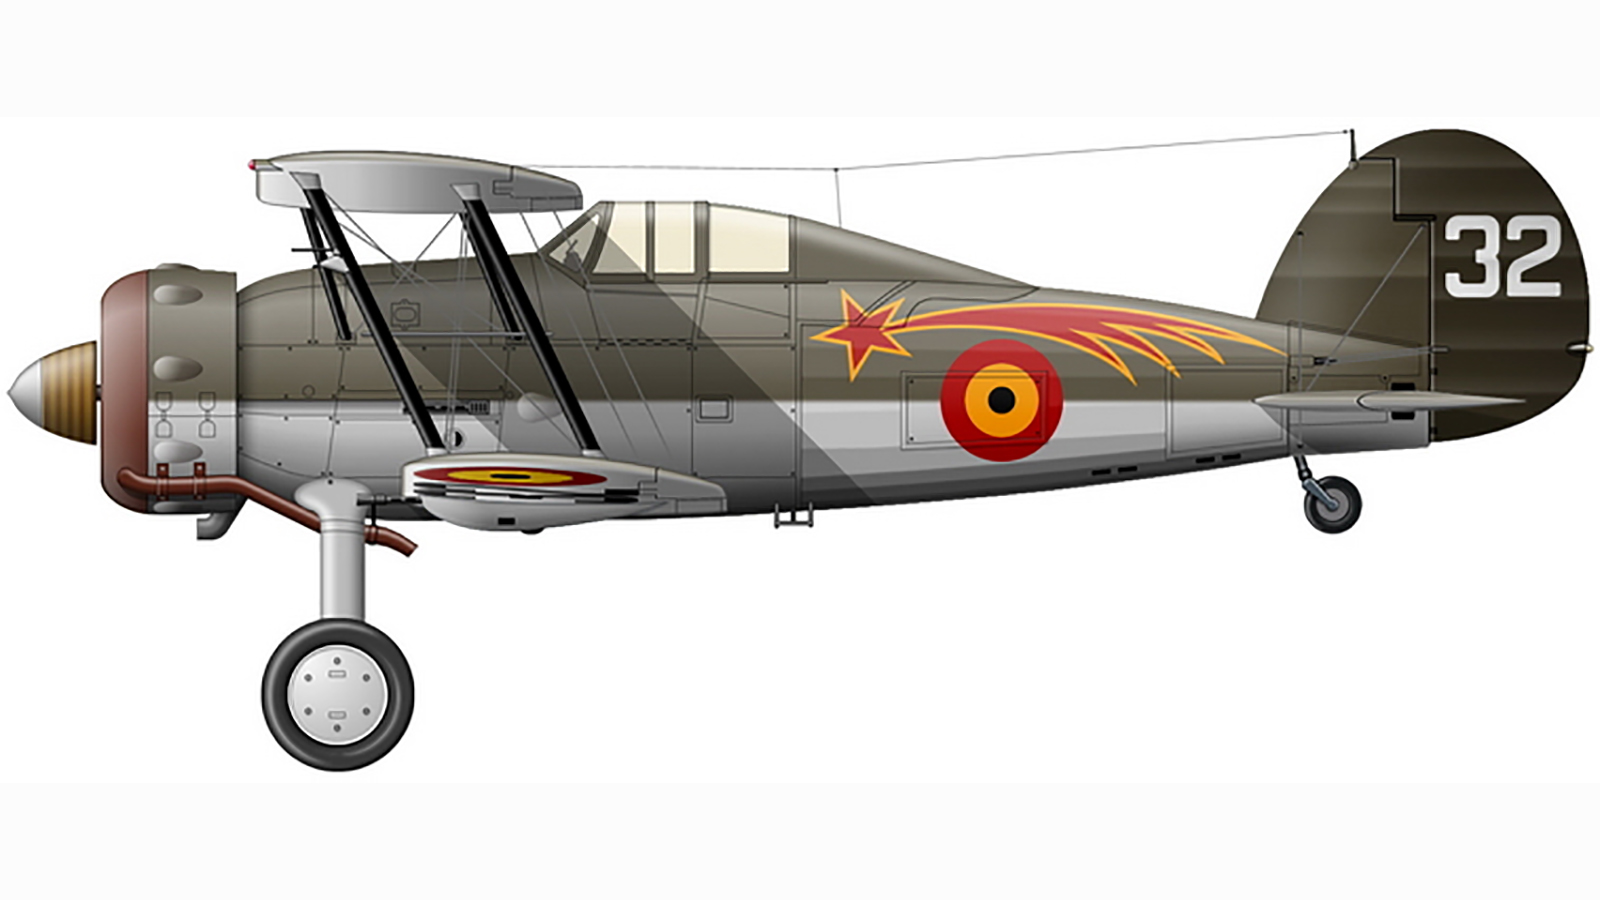 Gladiator I 1.I.2Ae Comet G 32 May 1940 0A